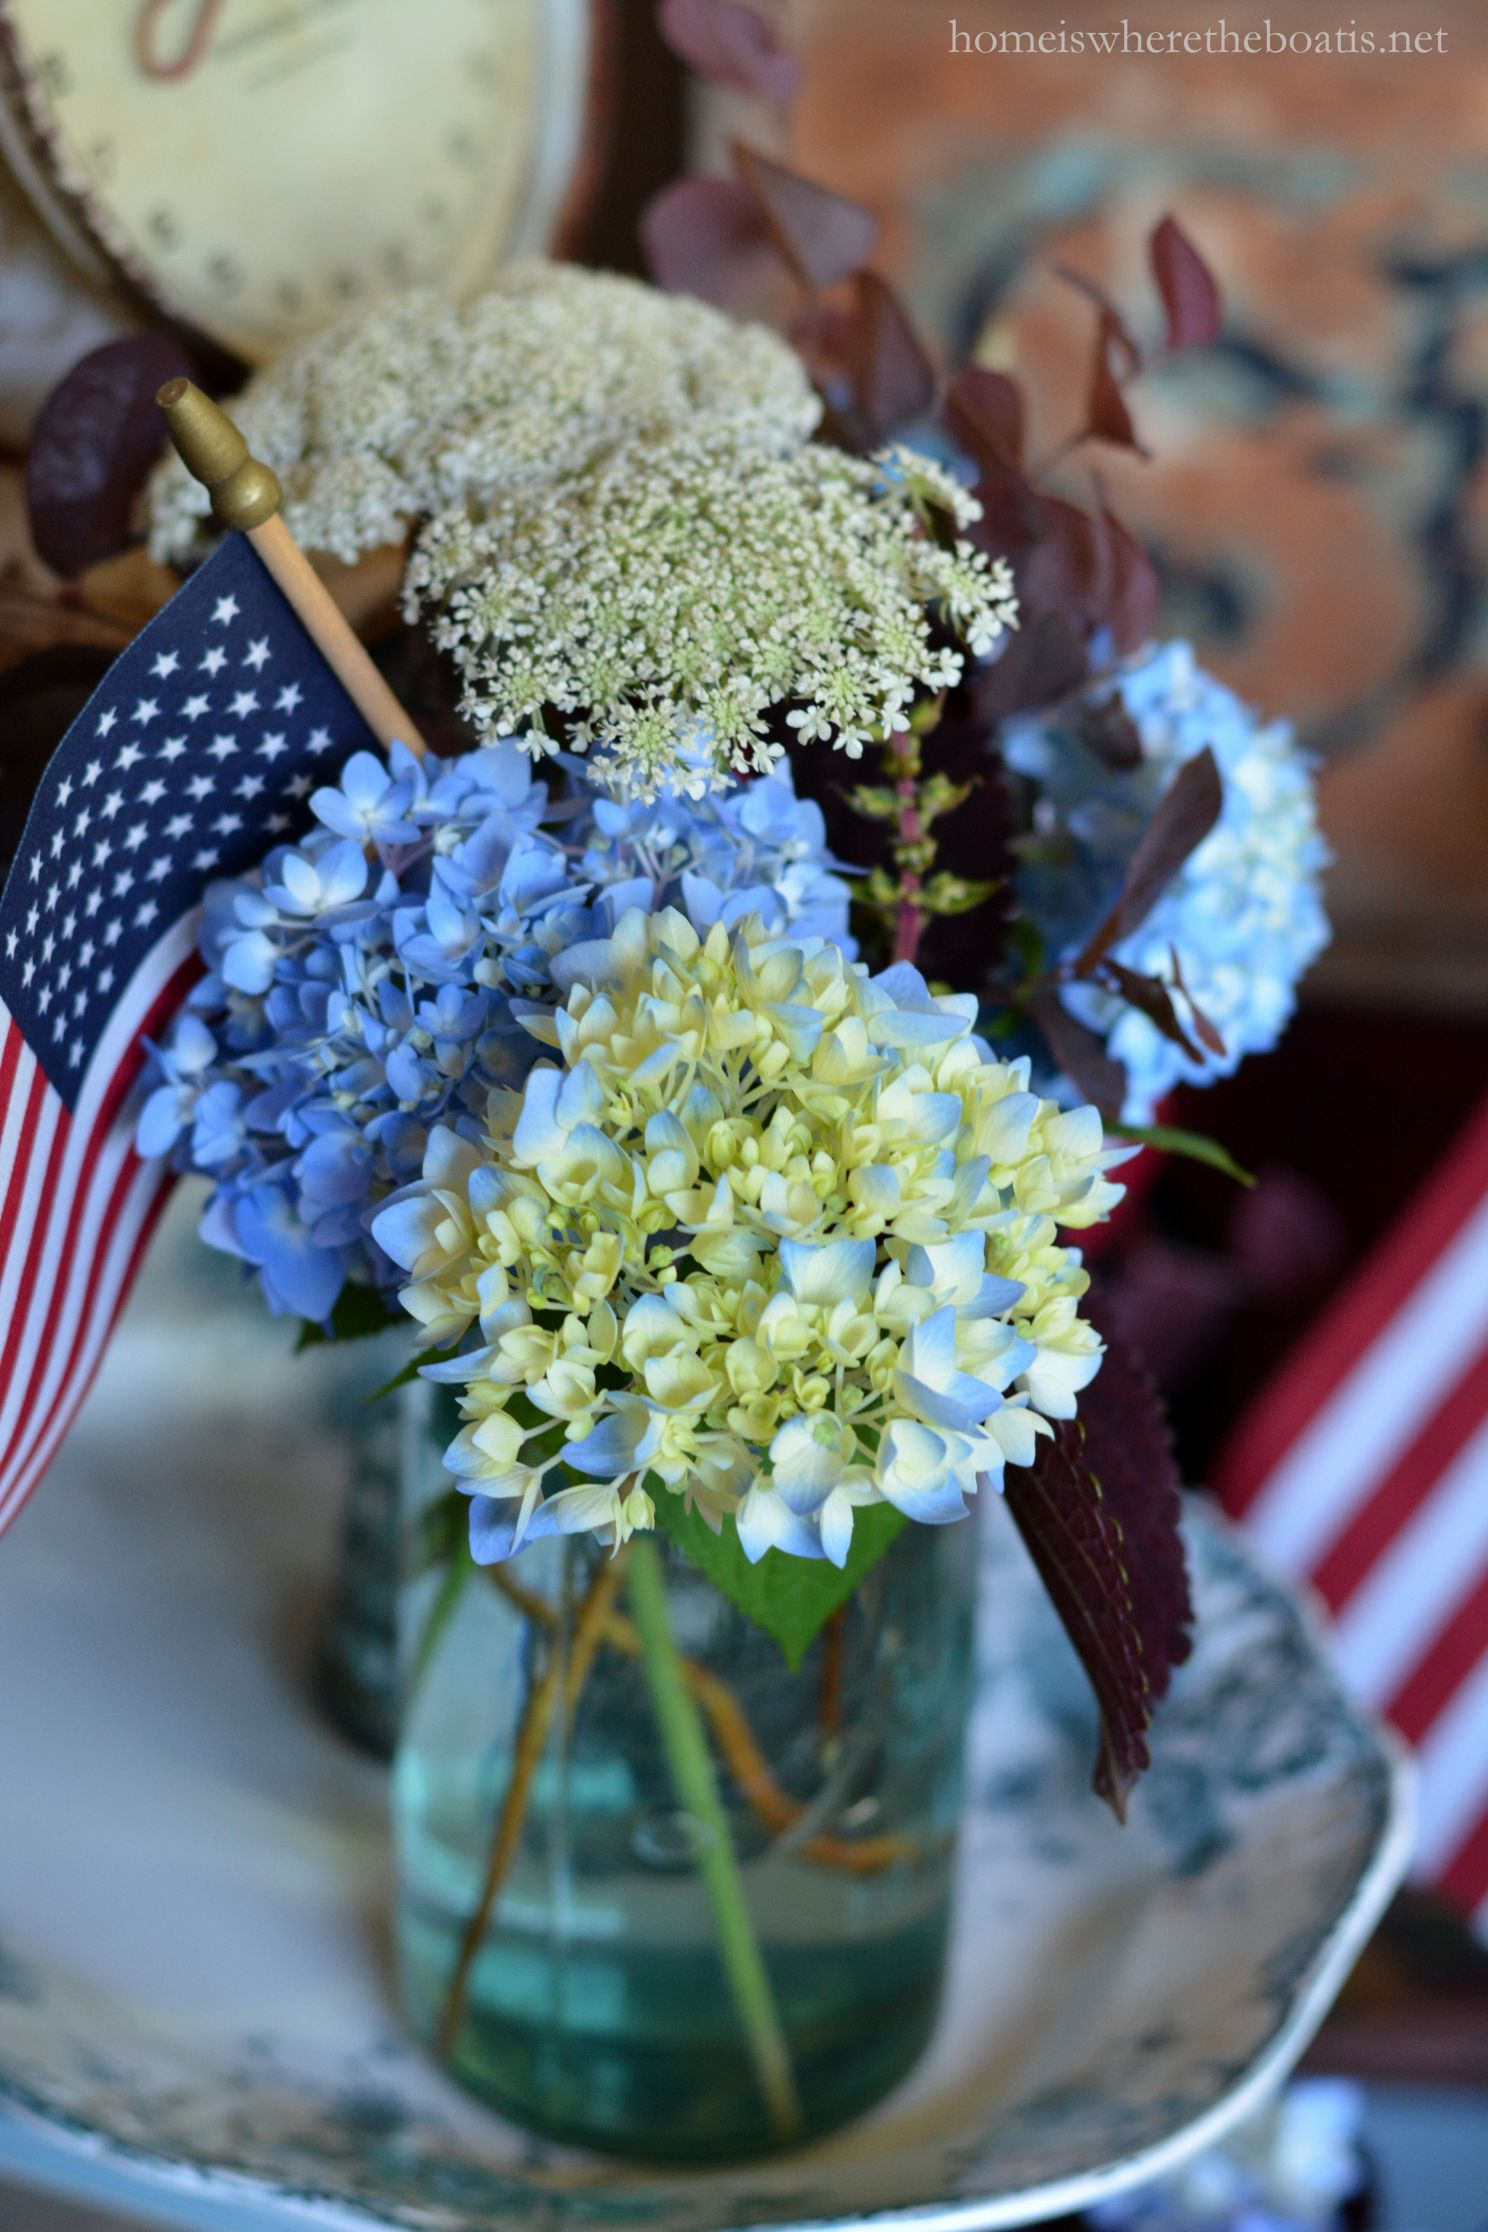 Ball Jar Bouquets To Celebrate The Red, White & Bloom